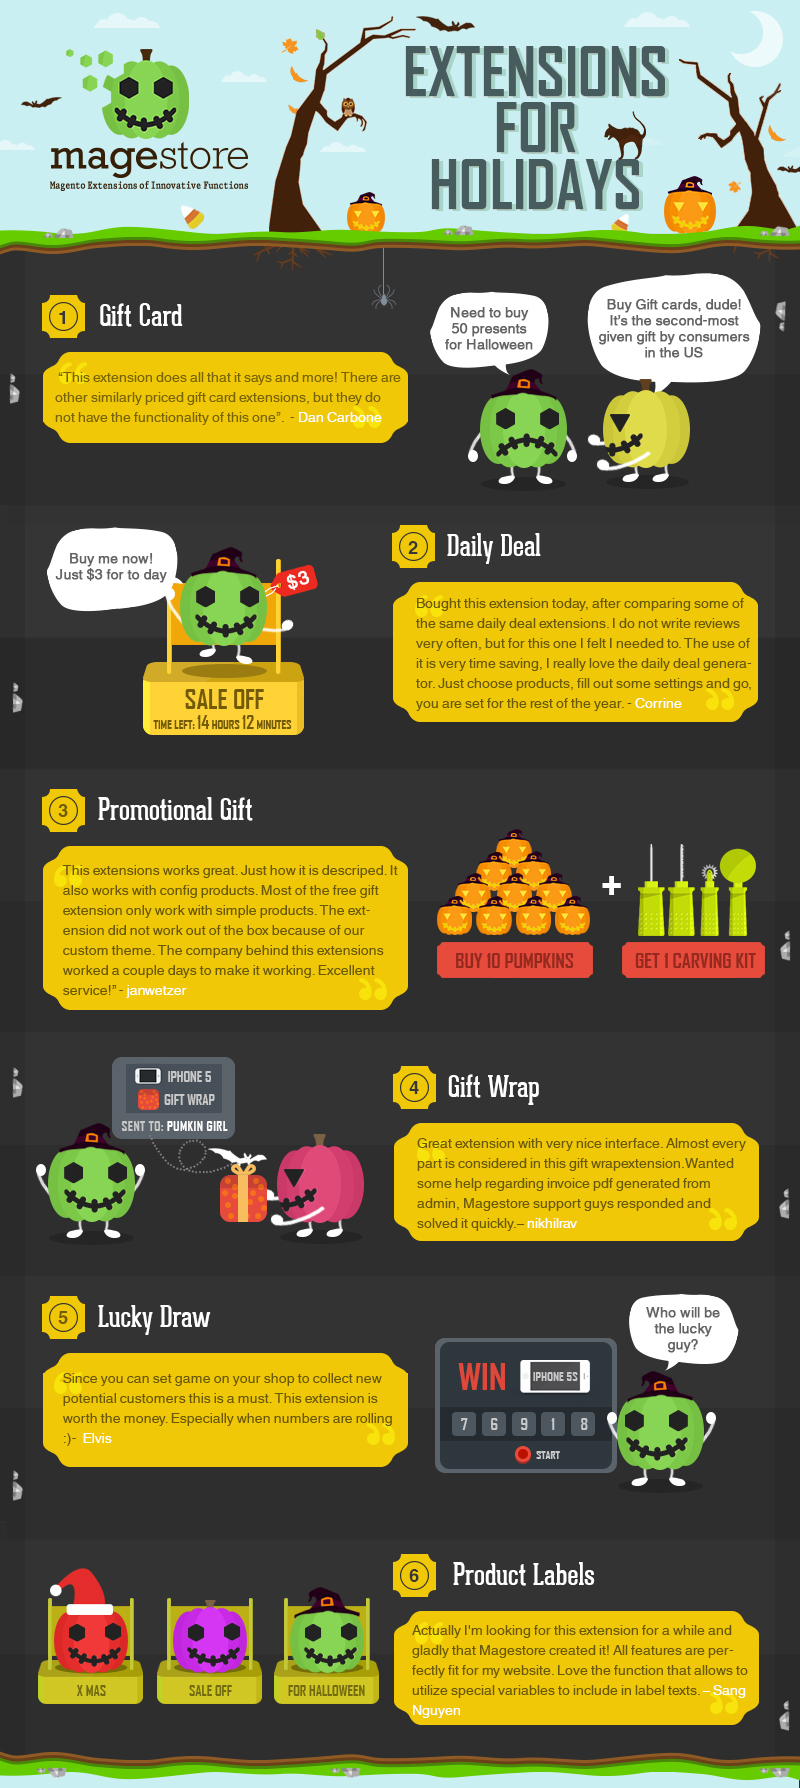 top-6-magento-extensions-to-help-boost-holiday-sales-infographic_525e0a79a03e1